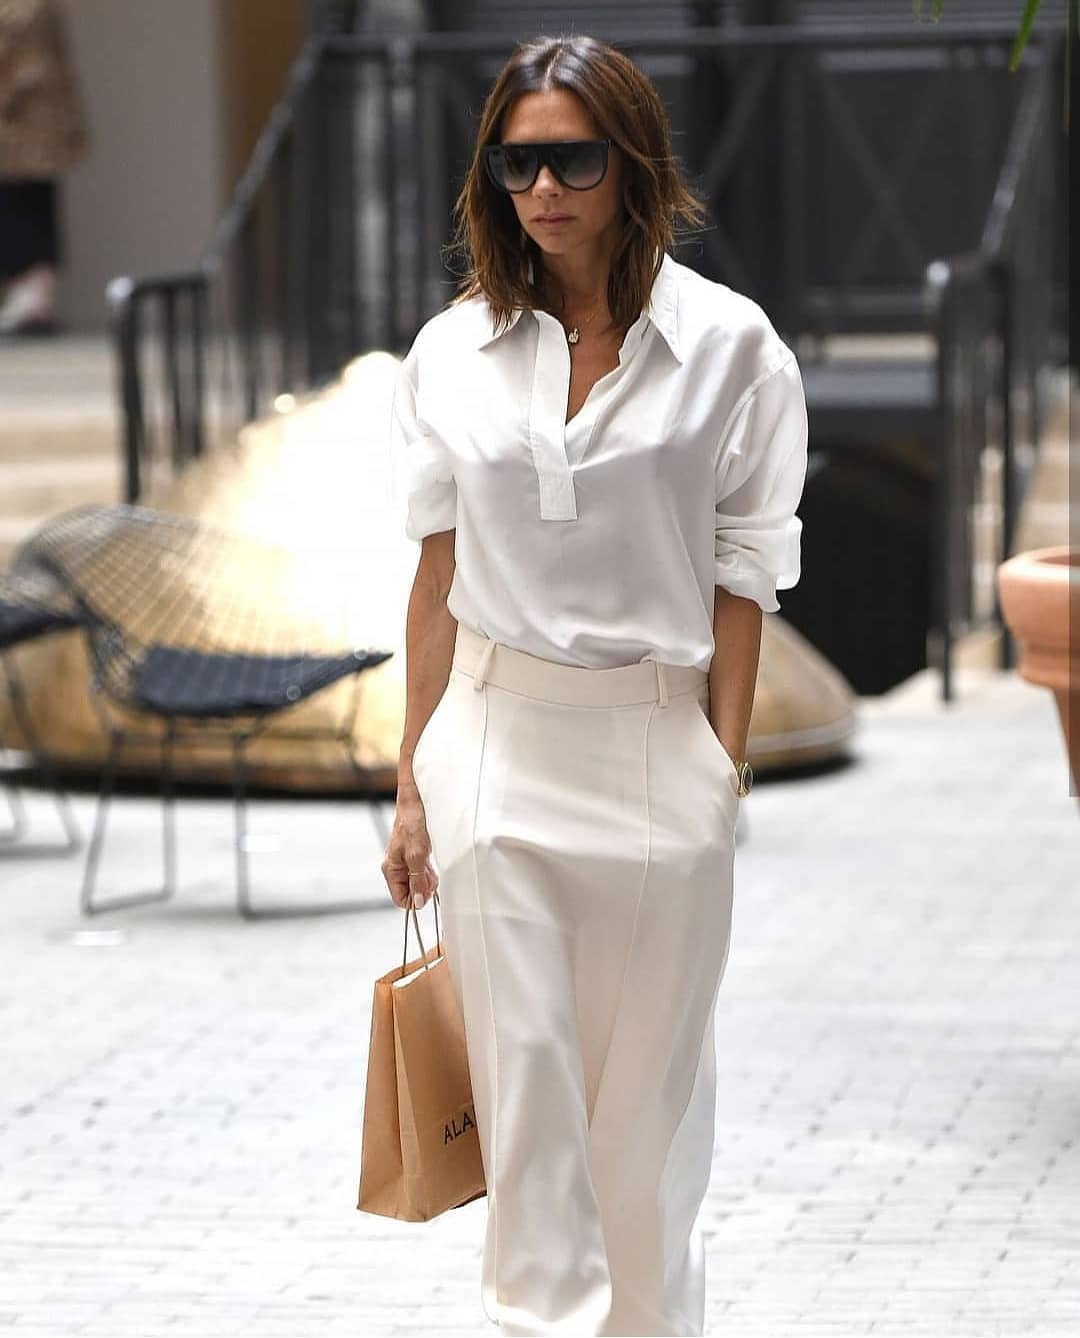 All White Outfit Idea For Summer Worn By Victoria Beckham 2020